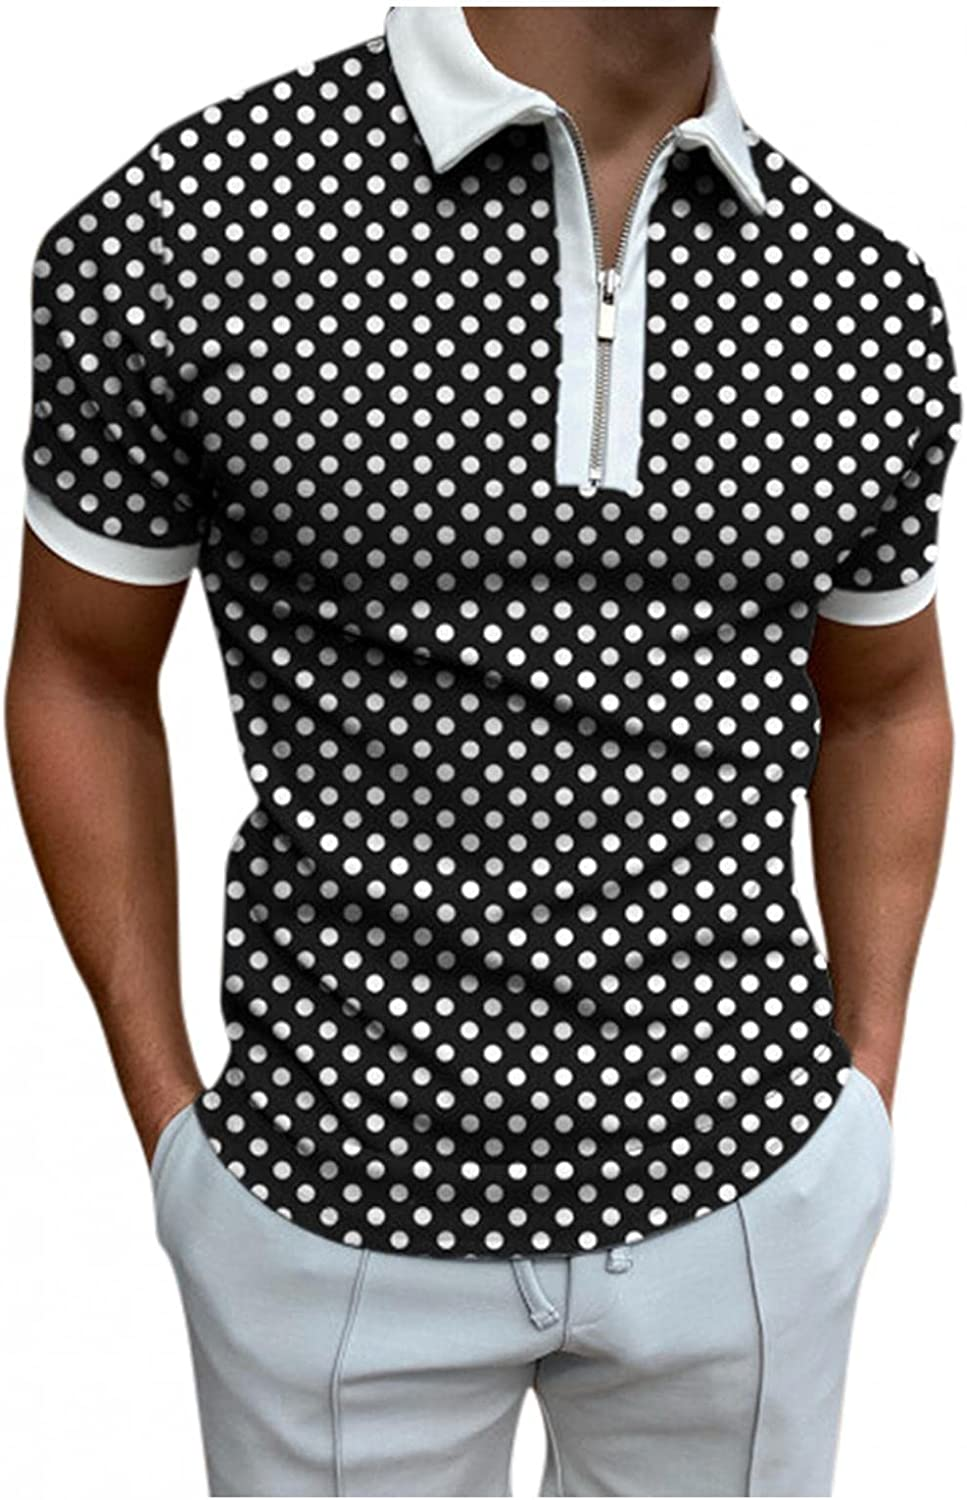 Polo Shirts for Men Short Sleeve Polka Dots Printed Zipper Tees Casual Slim Fit Business Pullover Soft Blouse Tops